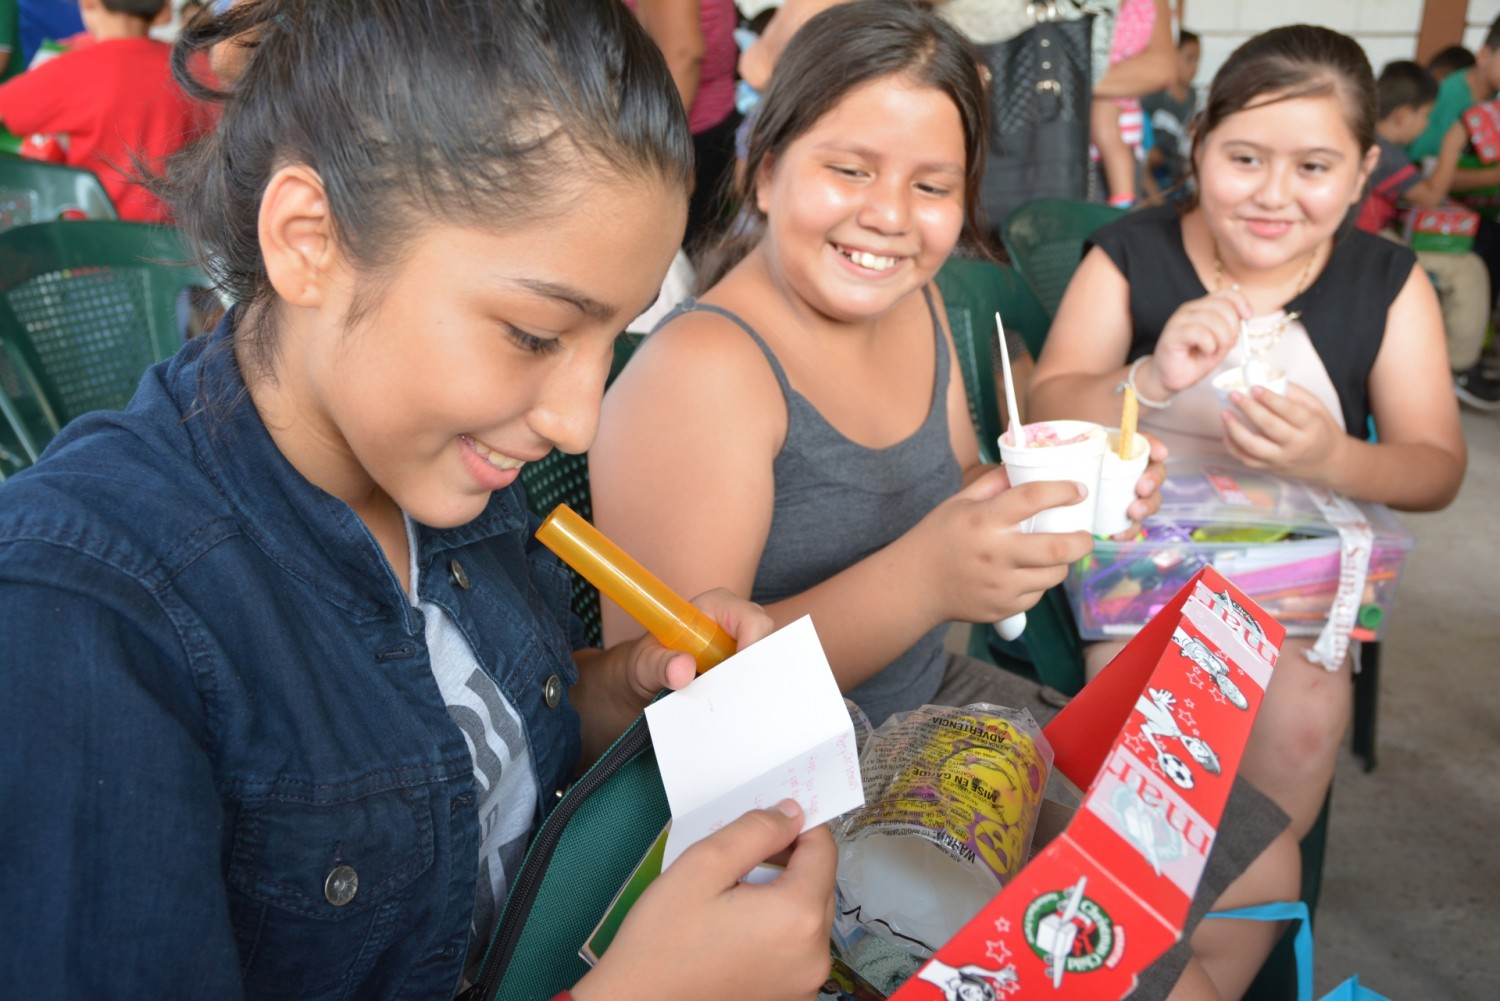 Three young girls open their shoeboxes in El Salvador.